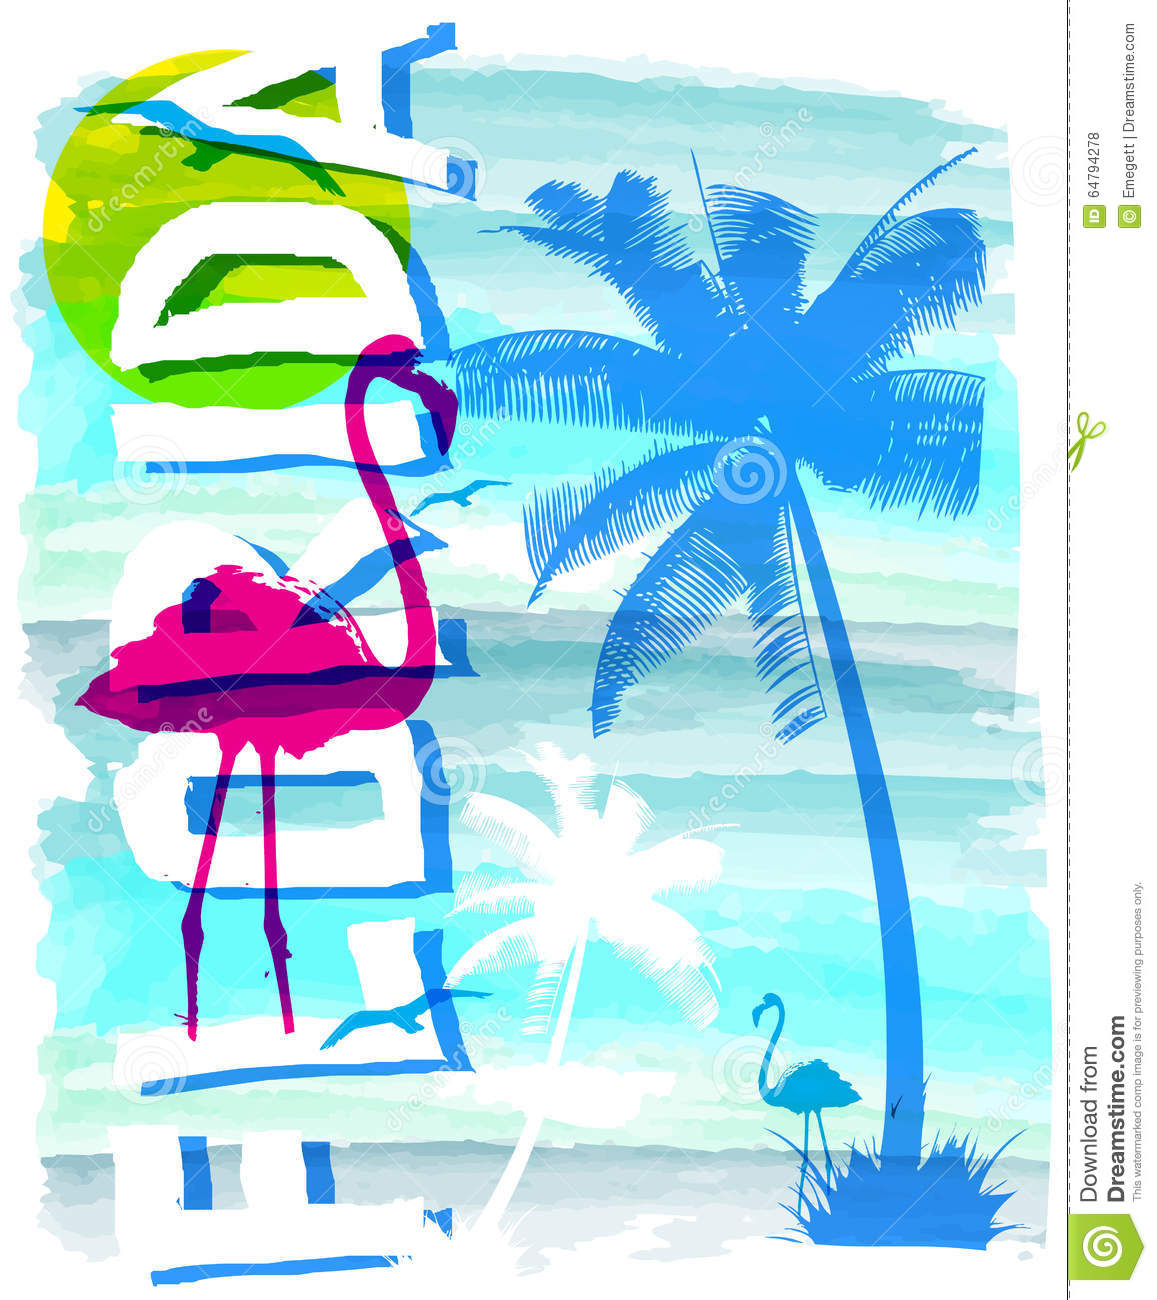 Vintage Beach Background Stock Photo 112981333: Summer Beach Vector Background In Retro Style Stock Vector